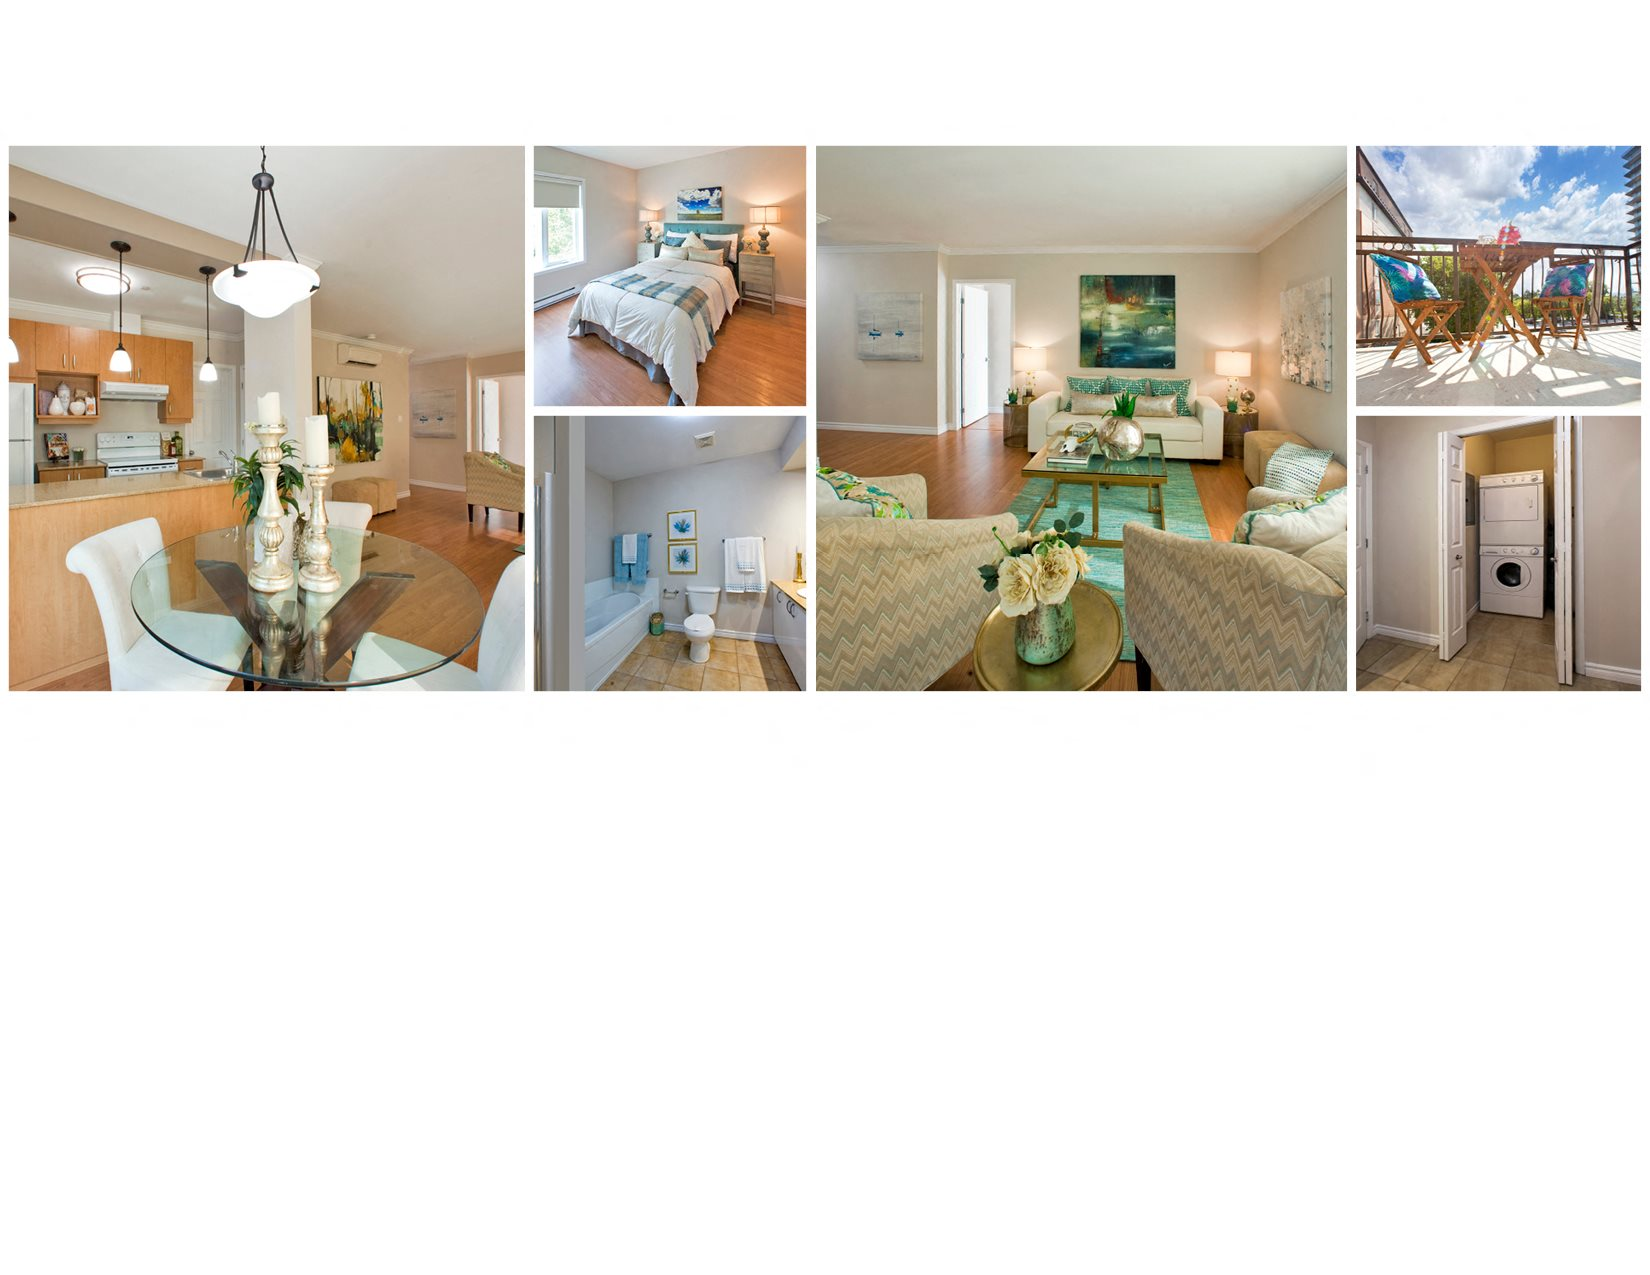 Heritage Lofts Apartments collage of apartment interiors in Gatineau, QC